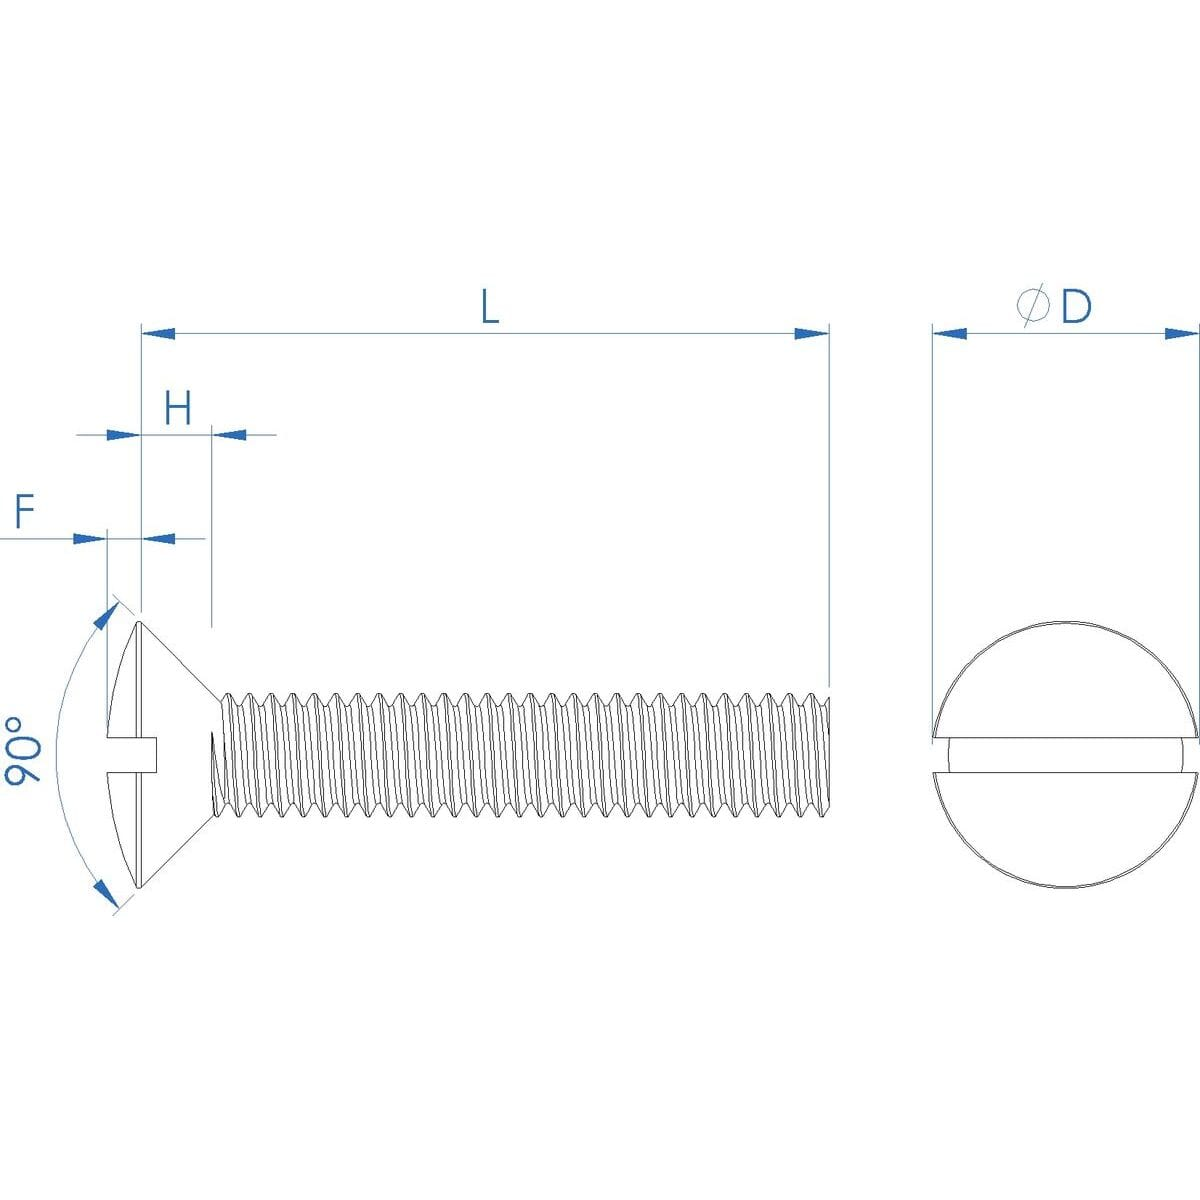 M4 x 70mm Raised Slotted Countersunk Screws (DIN 964) - Marine Stainless Steel (A4) Drawing